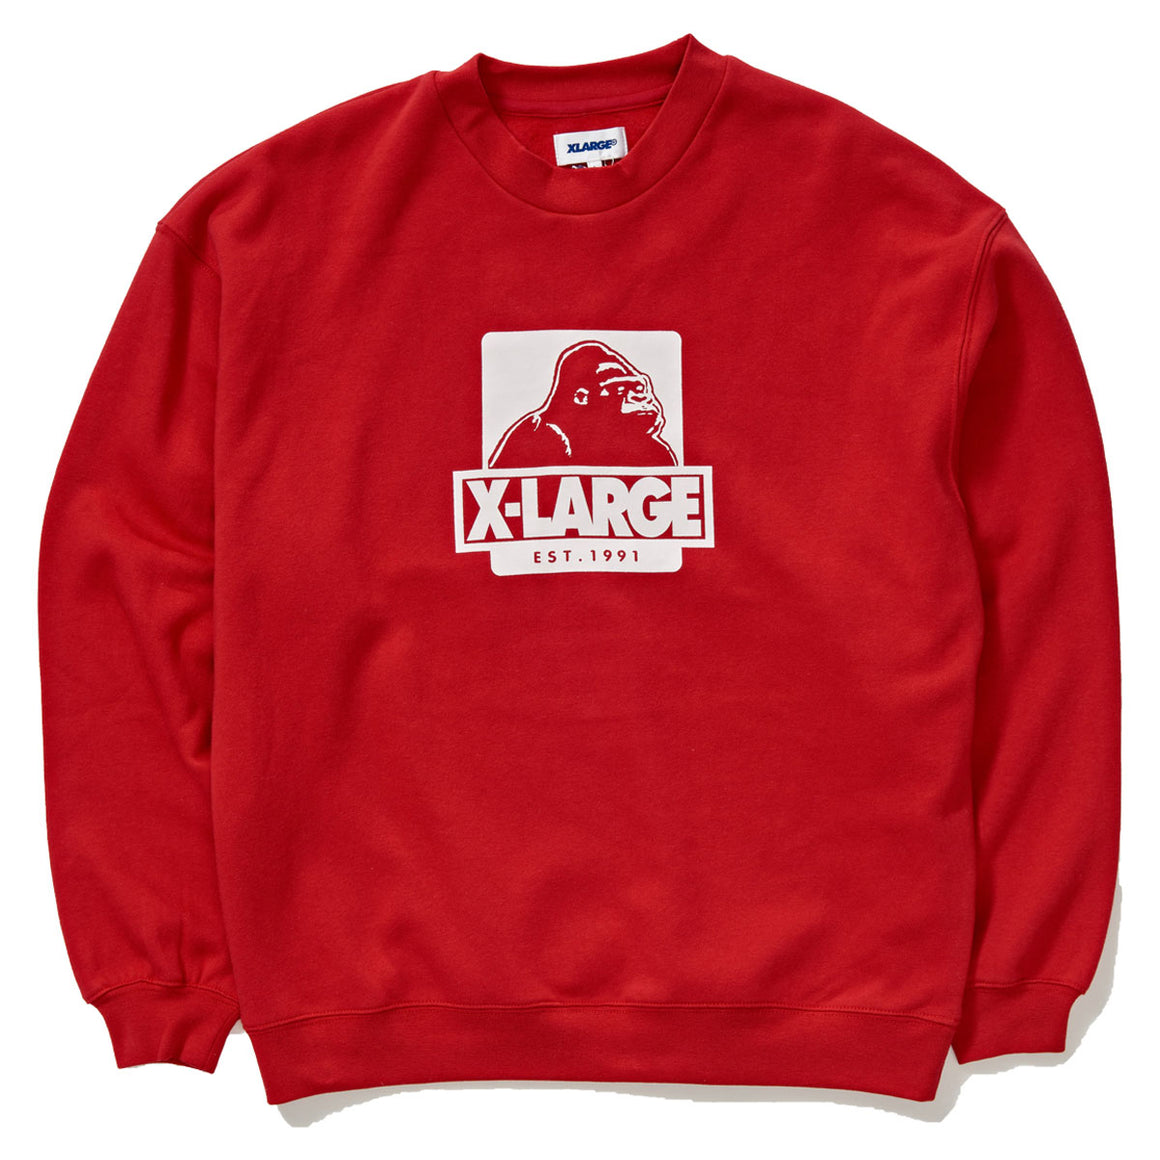 Classic OG Crew, Tops  - XLarge Brand